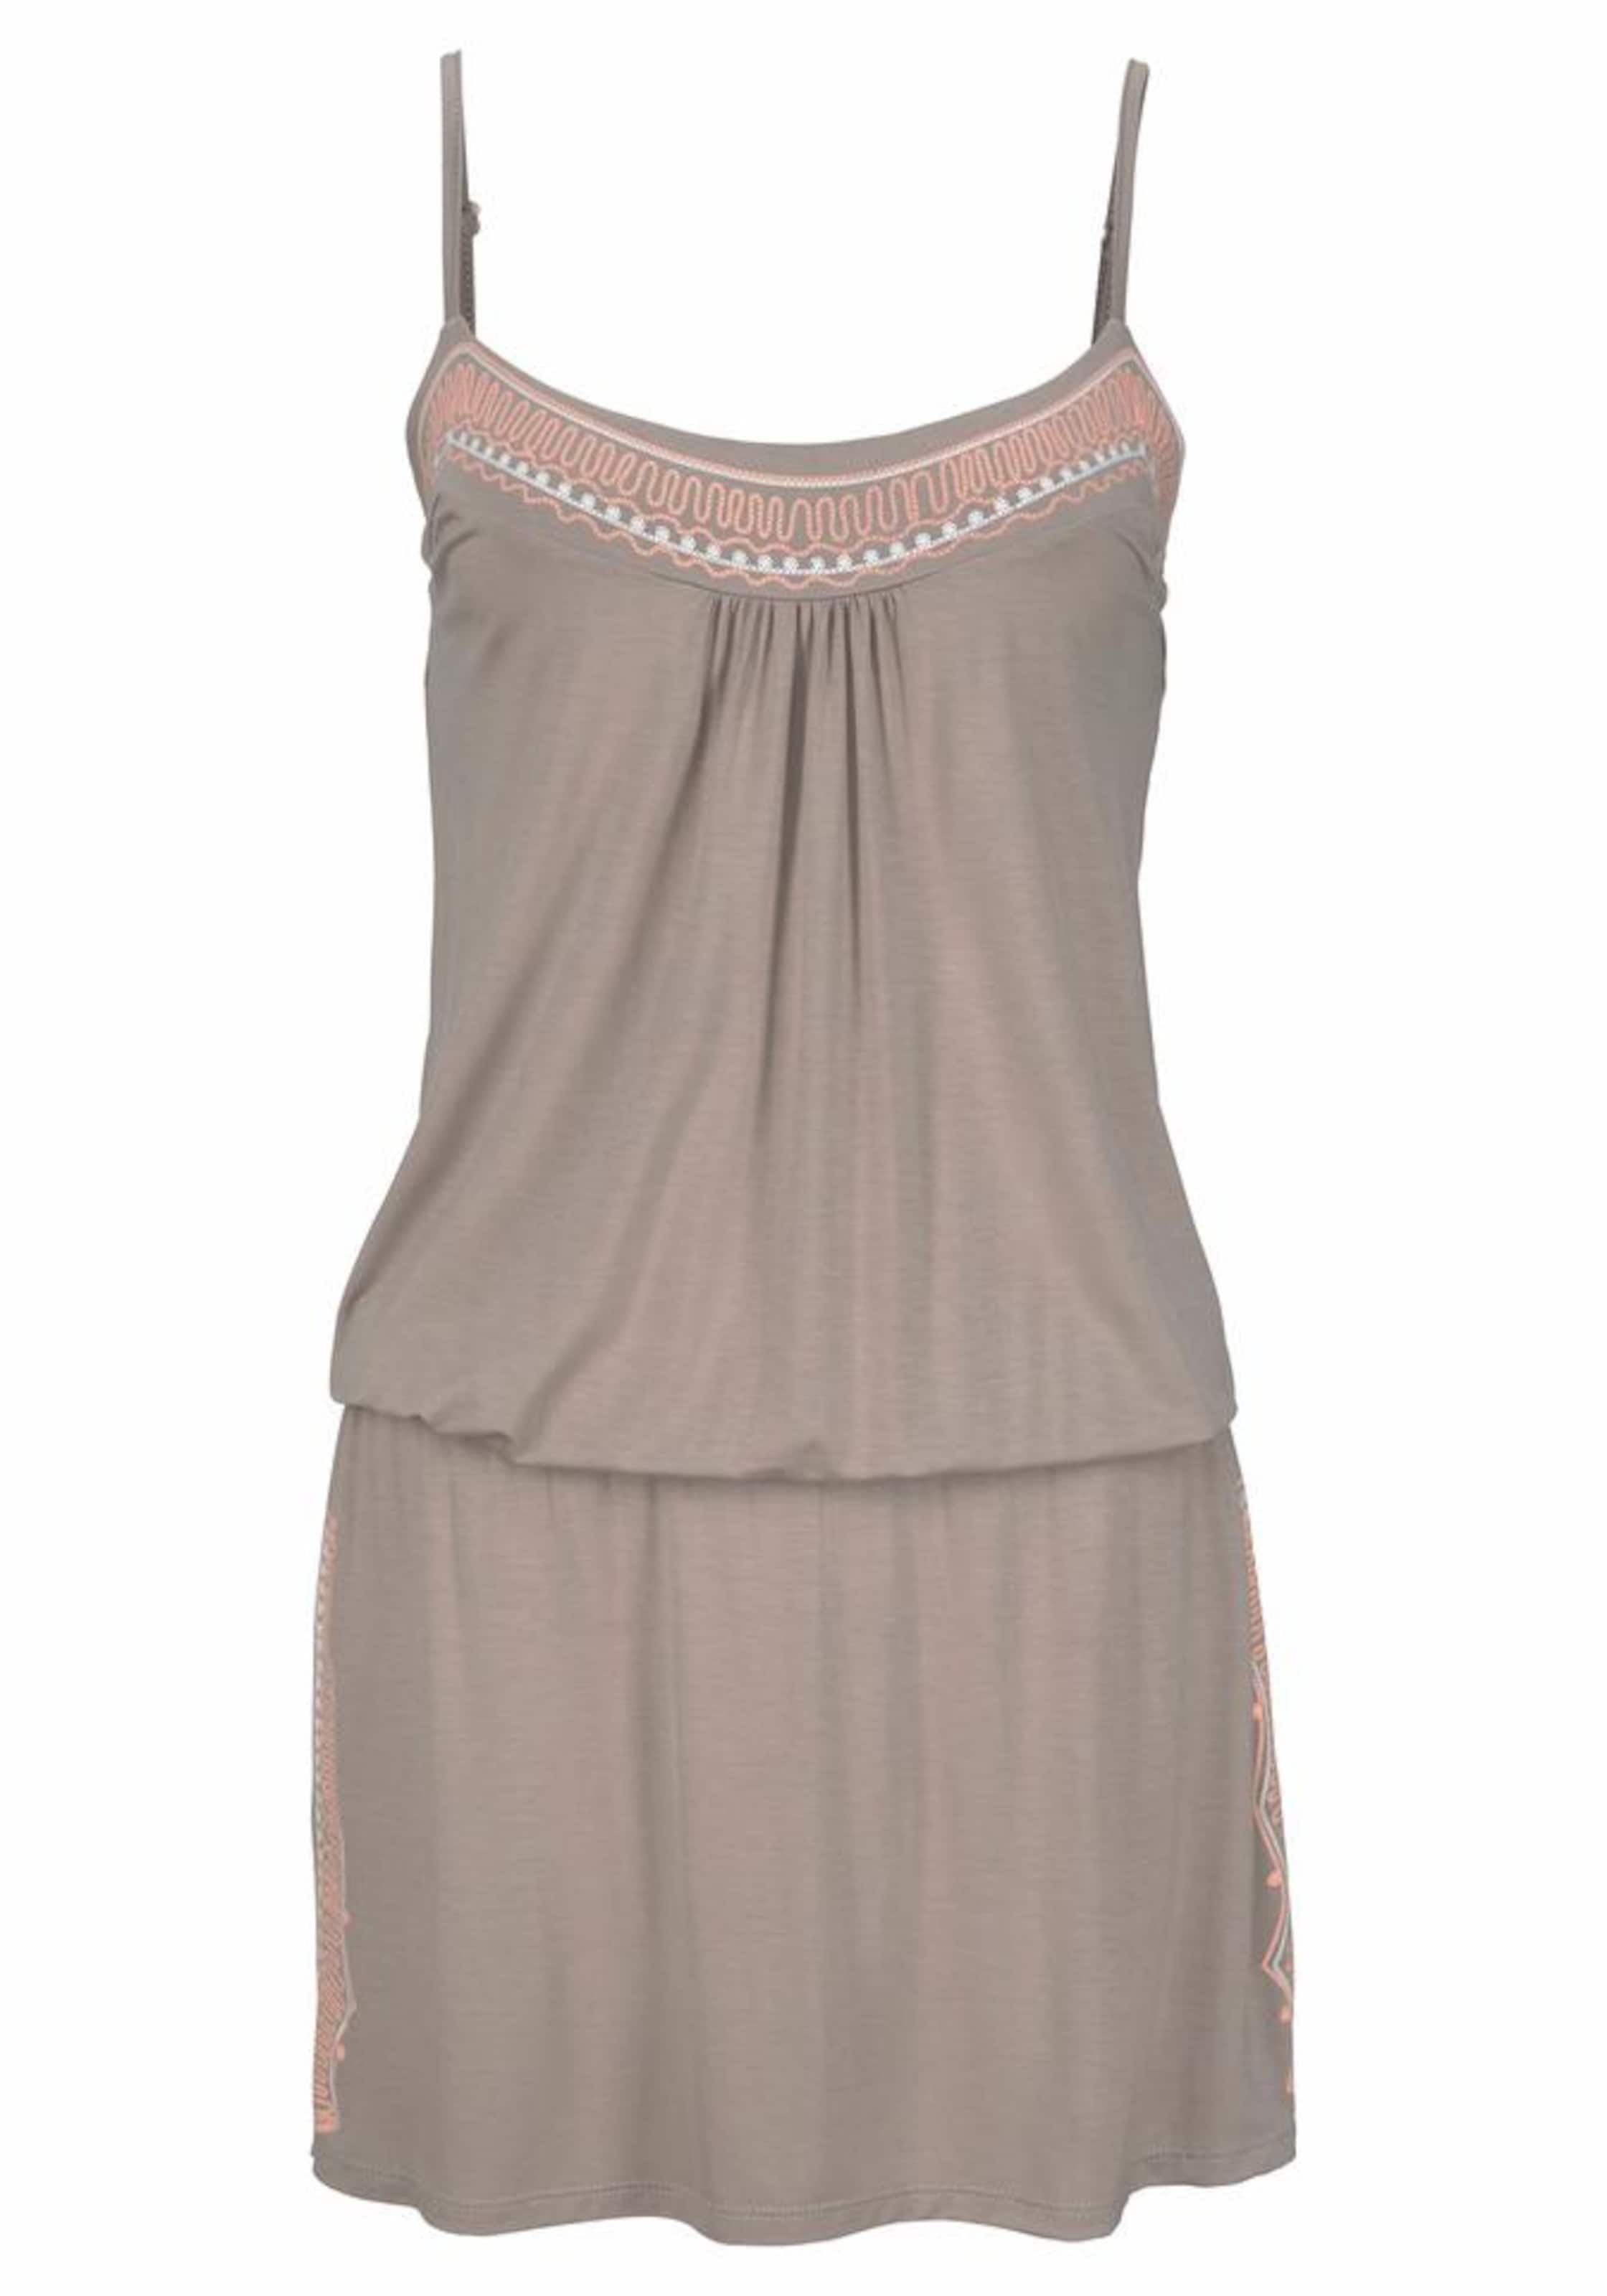 Strandkleid Buffalo Strandkleid Strandkleid Taupe In Taupe Buffalo In Buffalo EIDH29W